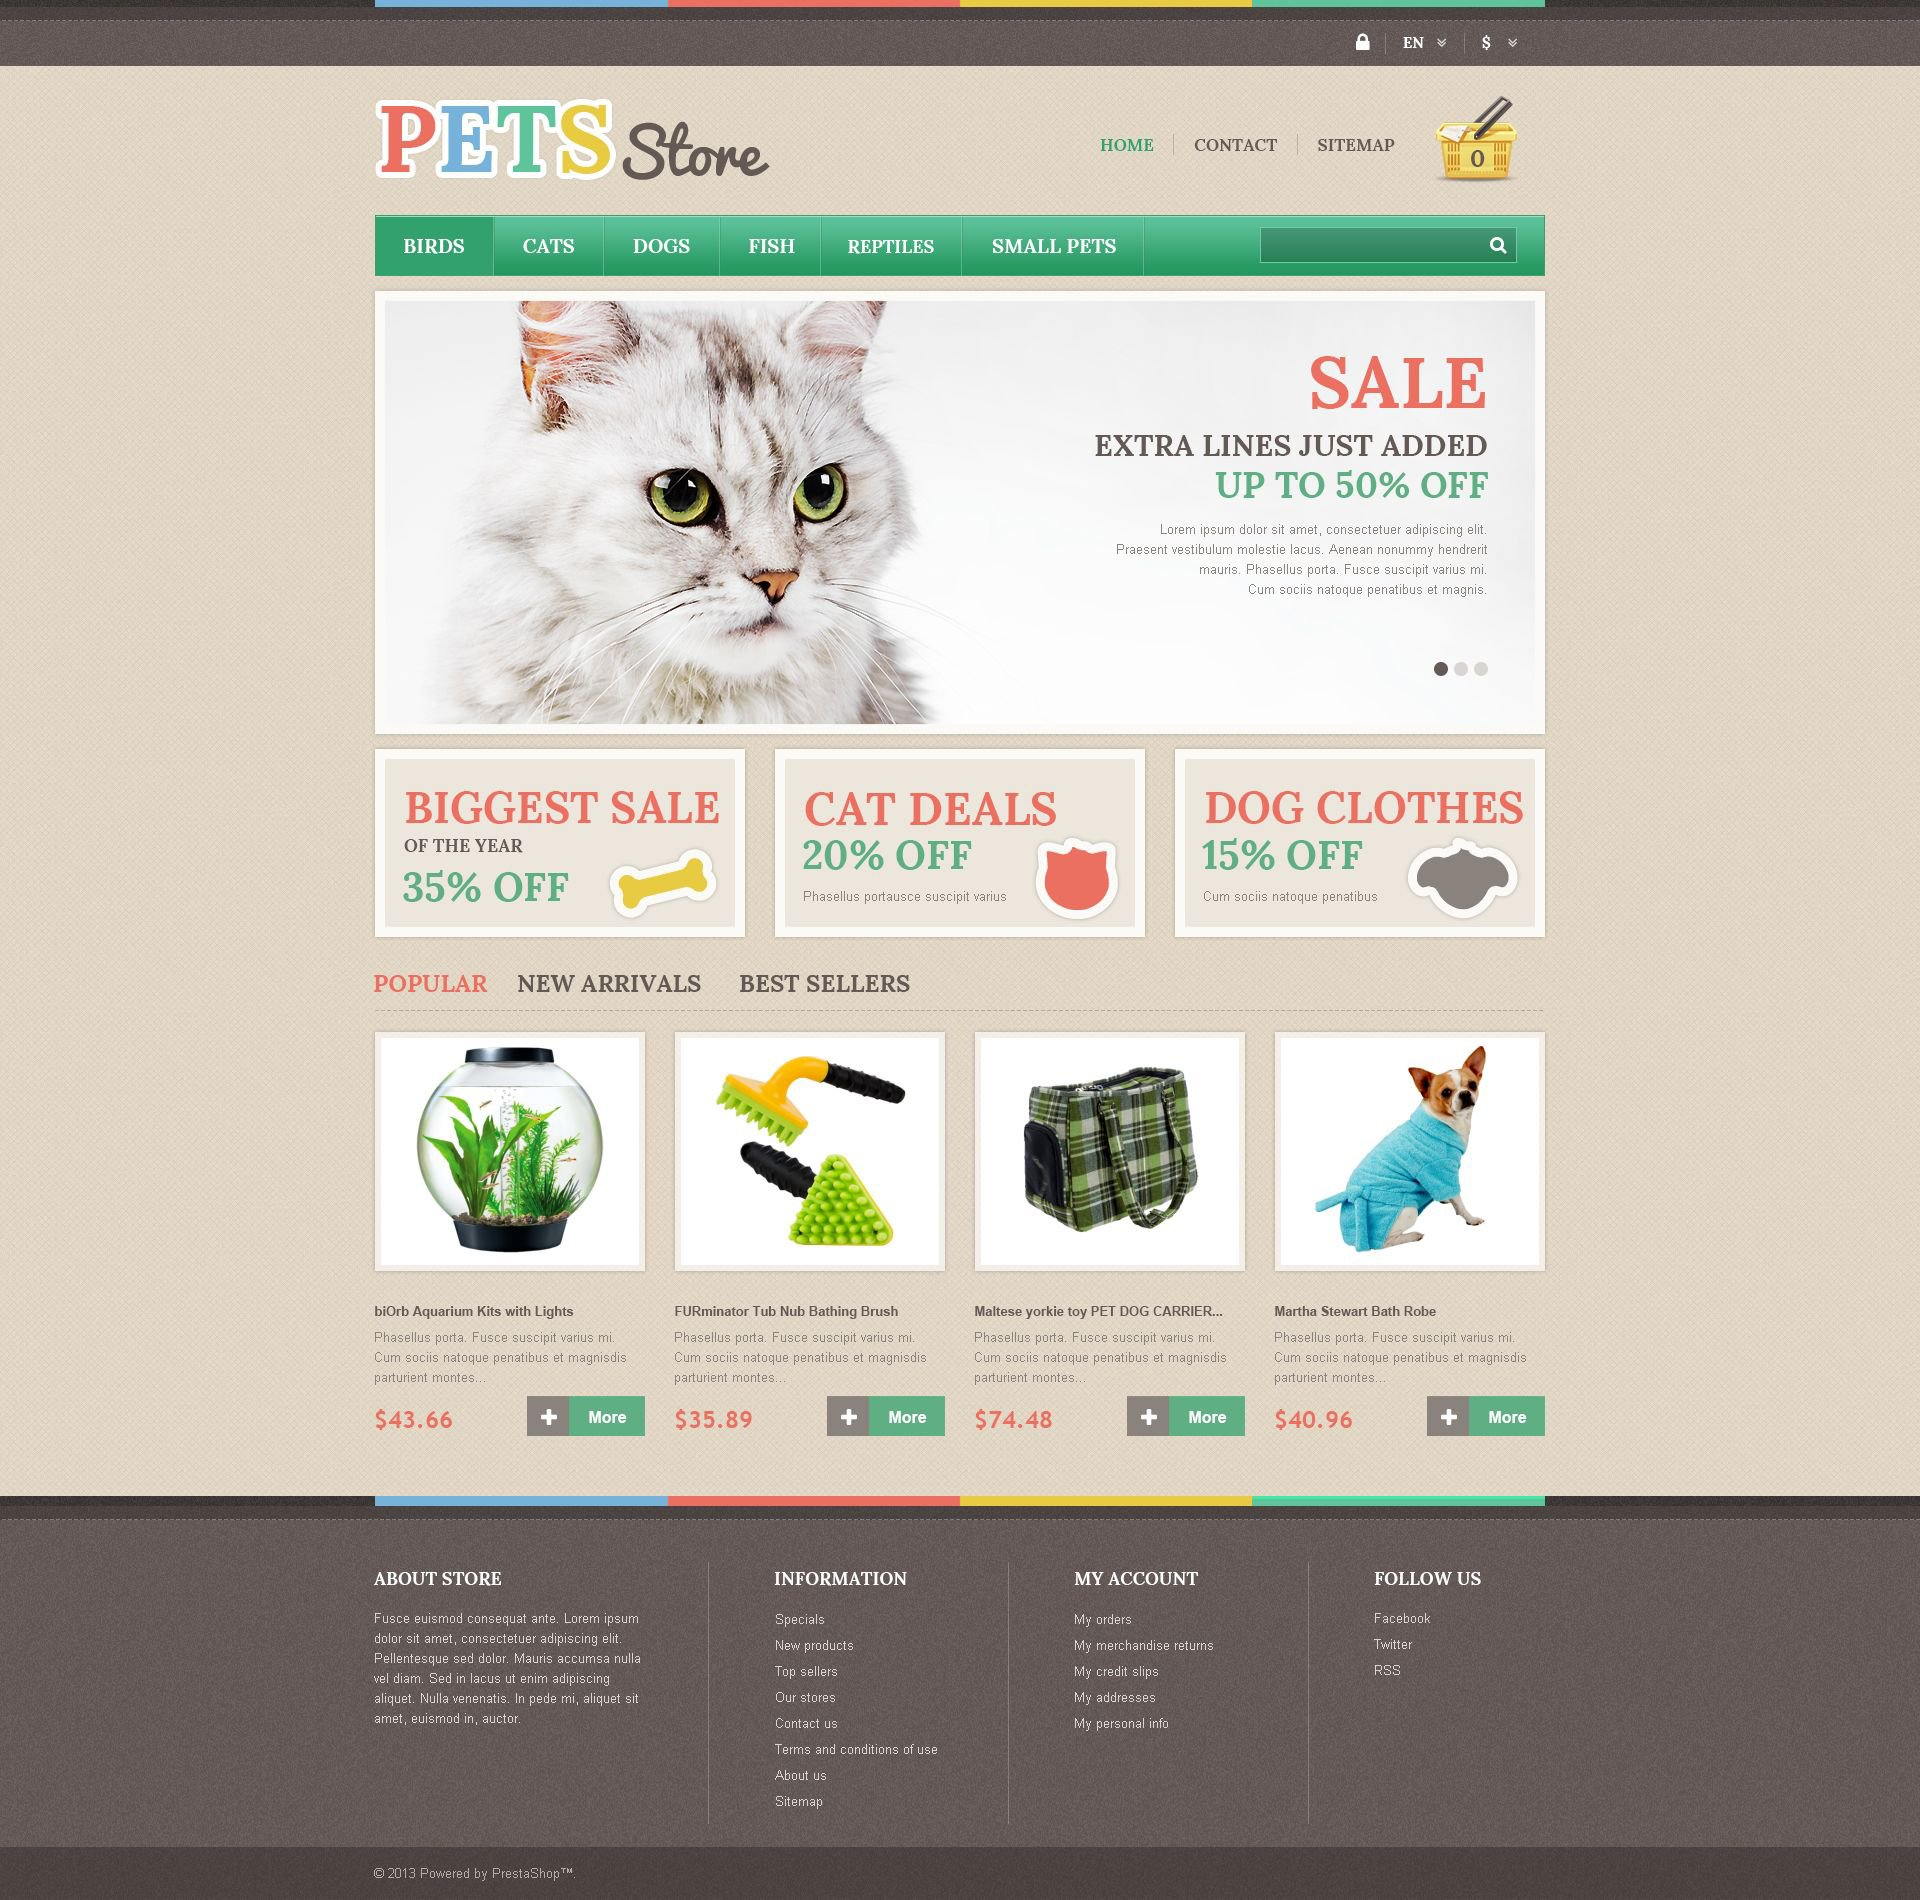 The Pets Store PrestaShop Design 53715, one of the best PrestaShop themes of its kind (animals & pets, most popular), also known as pets store PrestaShop template, online cat club PrestaShop template, kitten clinical PrestaShop template, veterinary PrestaShop template, vet PrestaShop template, tips PrestaShop template, feed PrestaShop template, medicine PrestaShop template, staff PrestaShop template, services PrestaShop template, breed PrestaShop template, age PrestaShop template, color PrestaShop template, accommodation PrestaShop template, adaptable PrestaShop template, pet PrestaShop template, apparel PrestaShop template, bed PrestaShop template, dishes PrestaShop template, bowl PrestaShop template, bone PrestaShop template, cleanup PrestaShop template, collar PrestaShop template, flea PrestaShop template, tick PrestaShop template, grooming PrestaShop template, supplies PrestaShop template, vitamins PrestaShop template, recommendation PrestaShop template, health PrestaShop template, leash and related with pets store, online cat club, kitten clinical, veterinary, vet, tips, feed, medicine, staff, services, breed, age, color, accommodation, adaptable, pet, apparel, bed, dishes, bowl, bone, cleanup, collar, flea, tick, grooming, supplies, vitamins, recommendation, health, leash, etc.